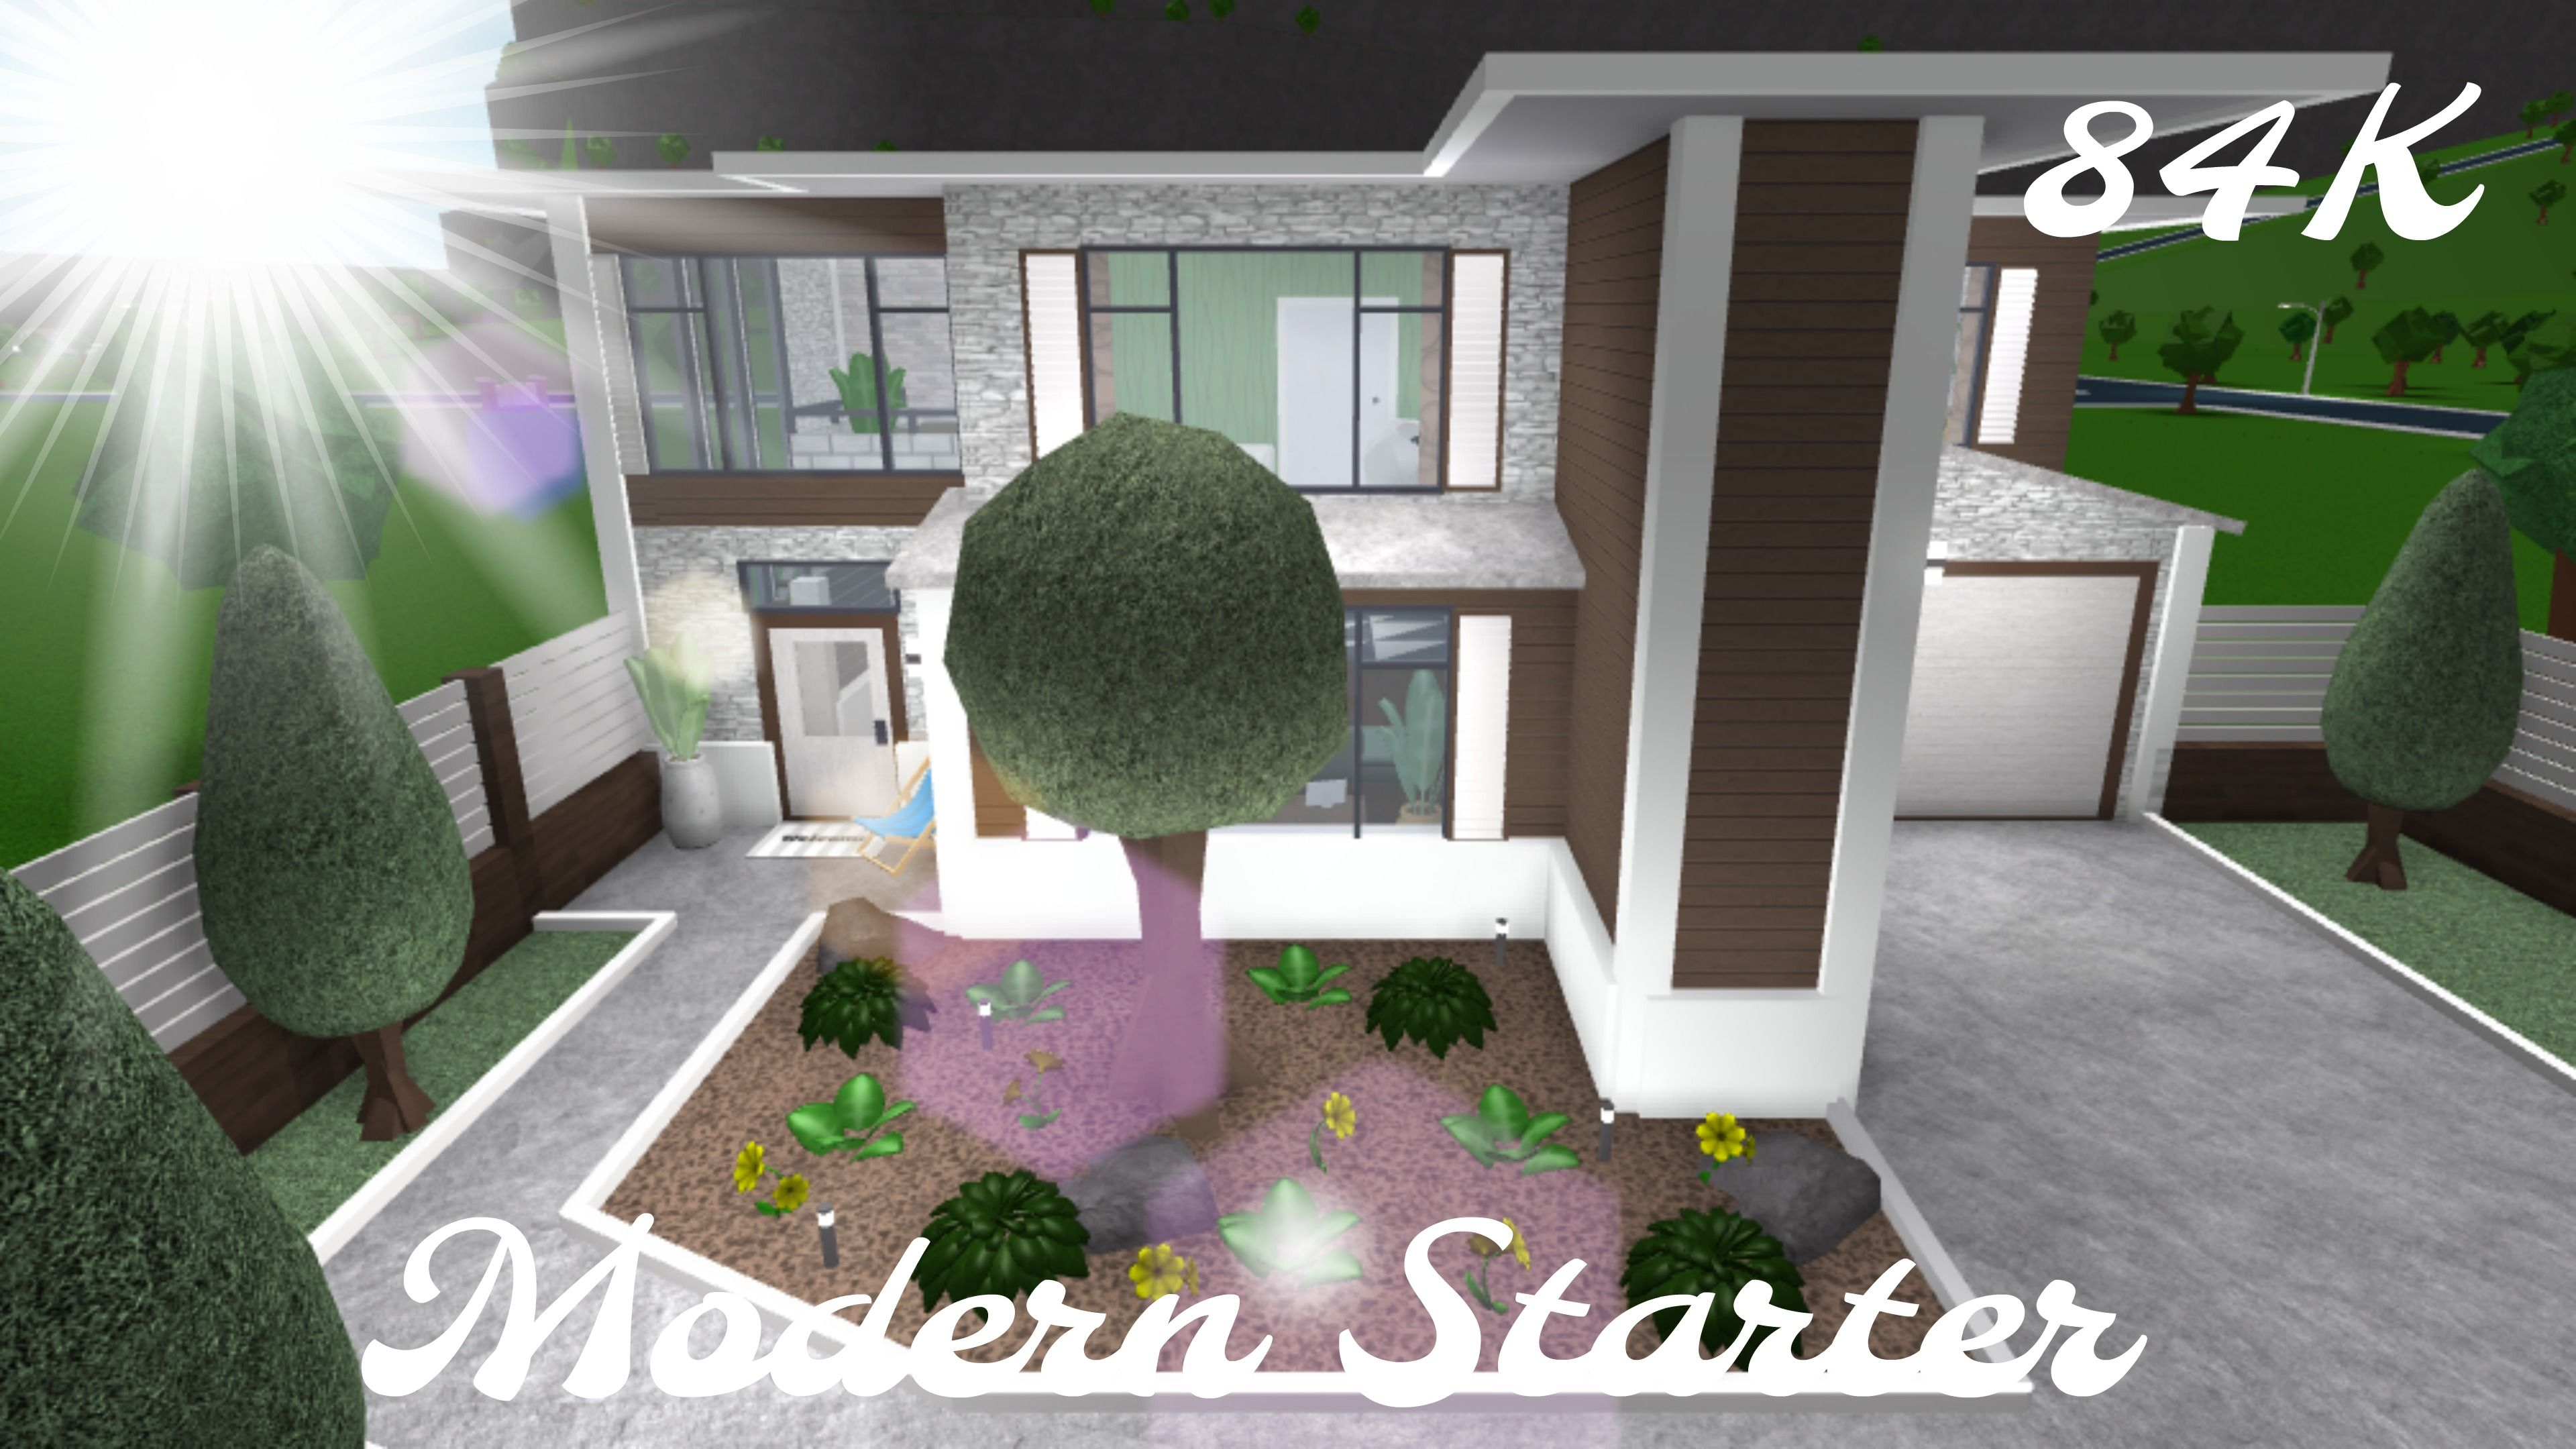 Roblox Bloxburg Modern Family Home 99k Modern Starter House Plans With Pictures Two Story House Design Modern Family House